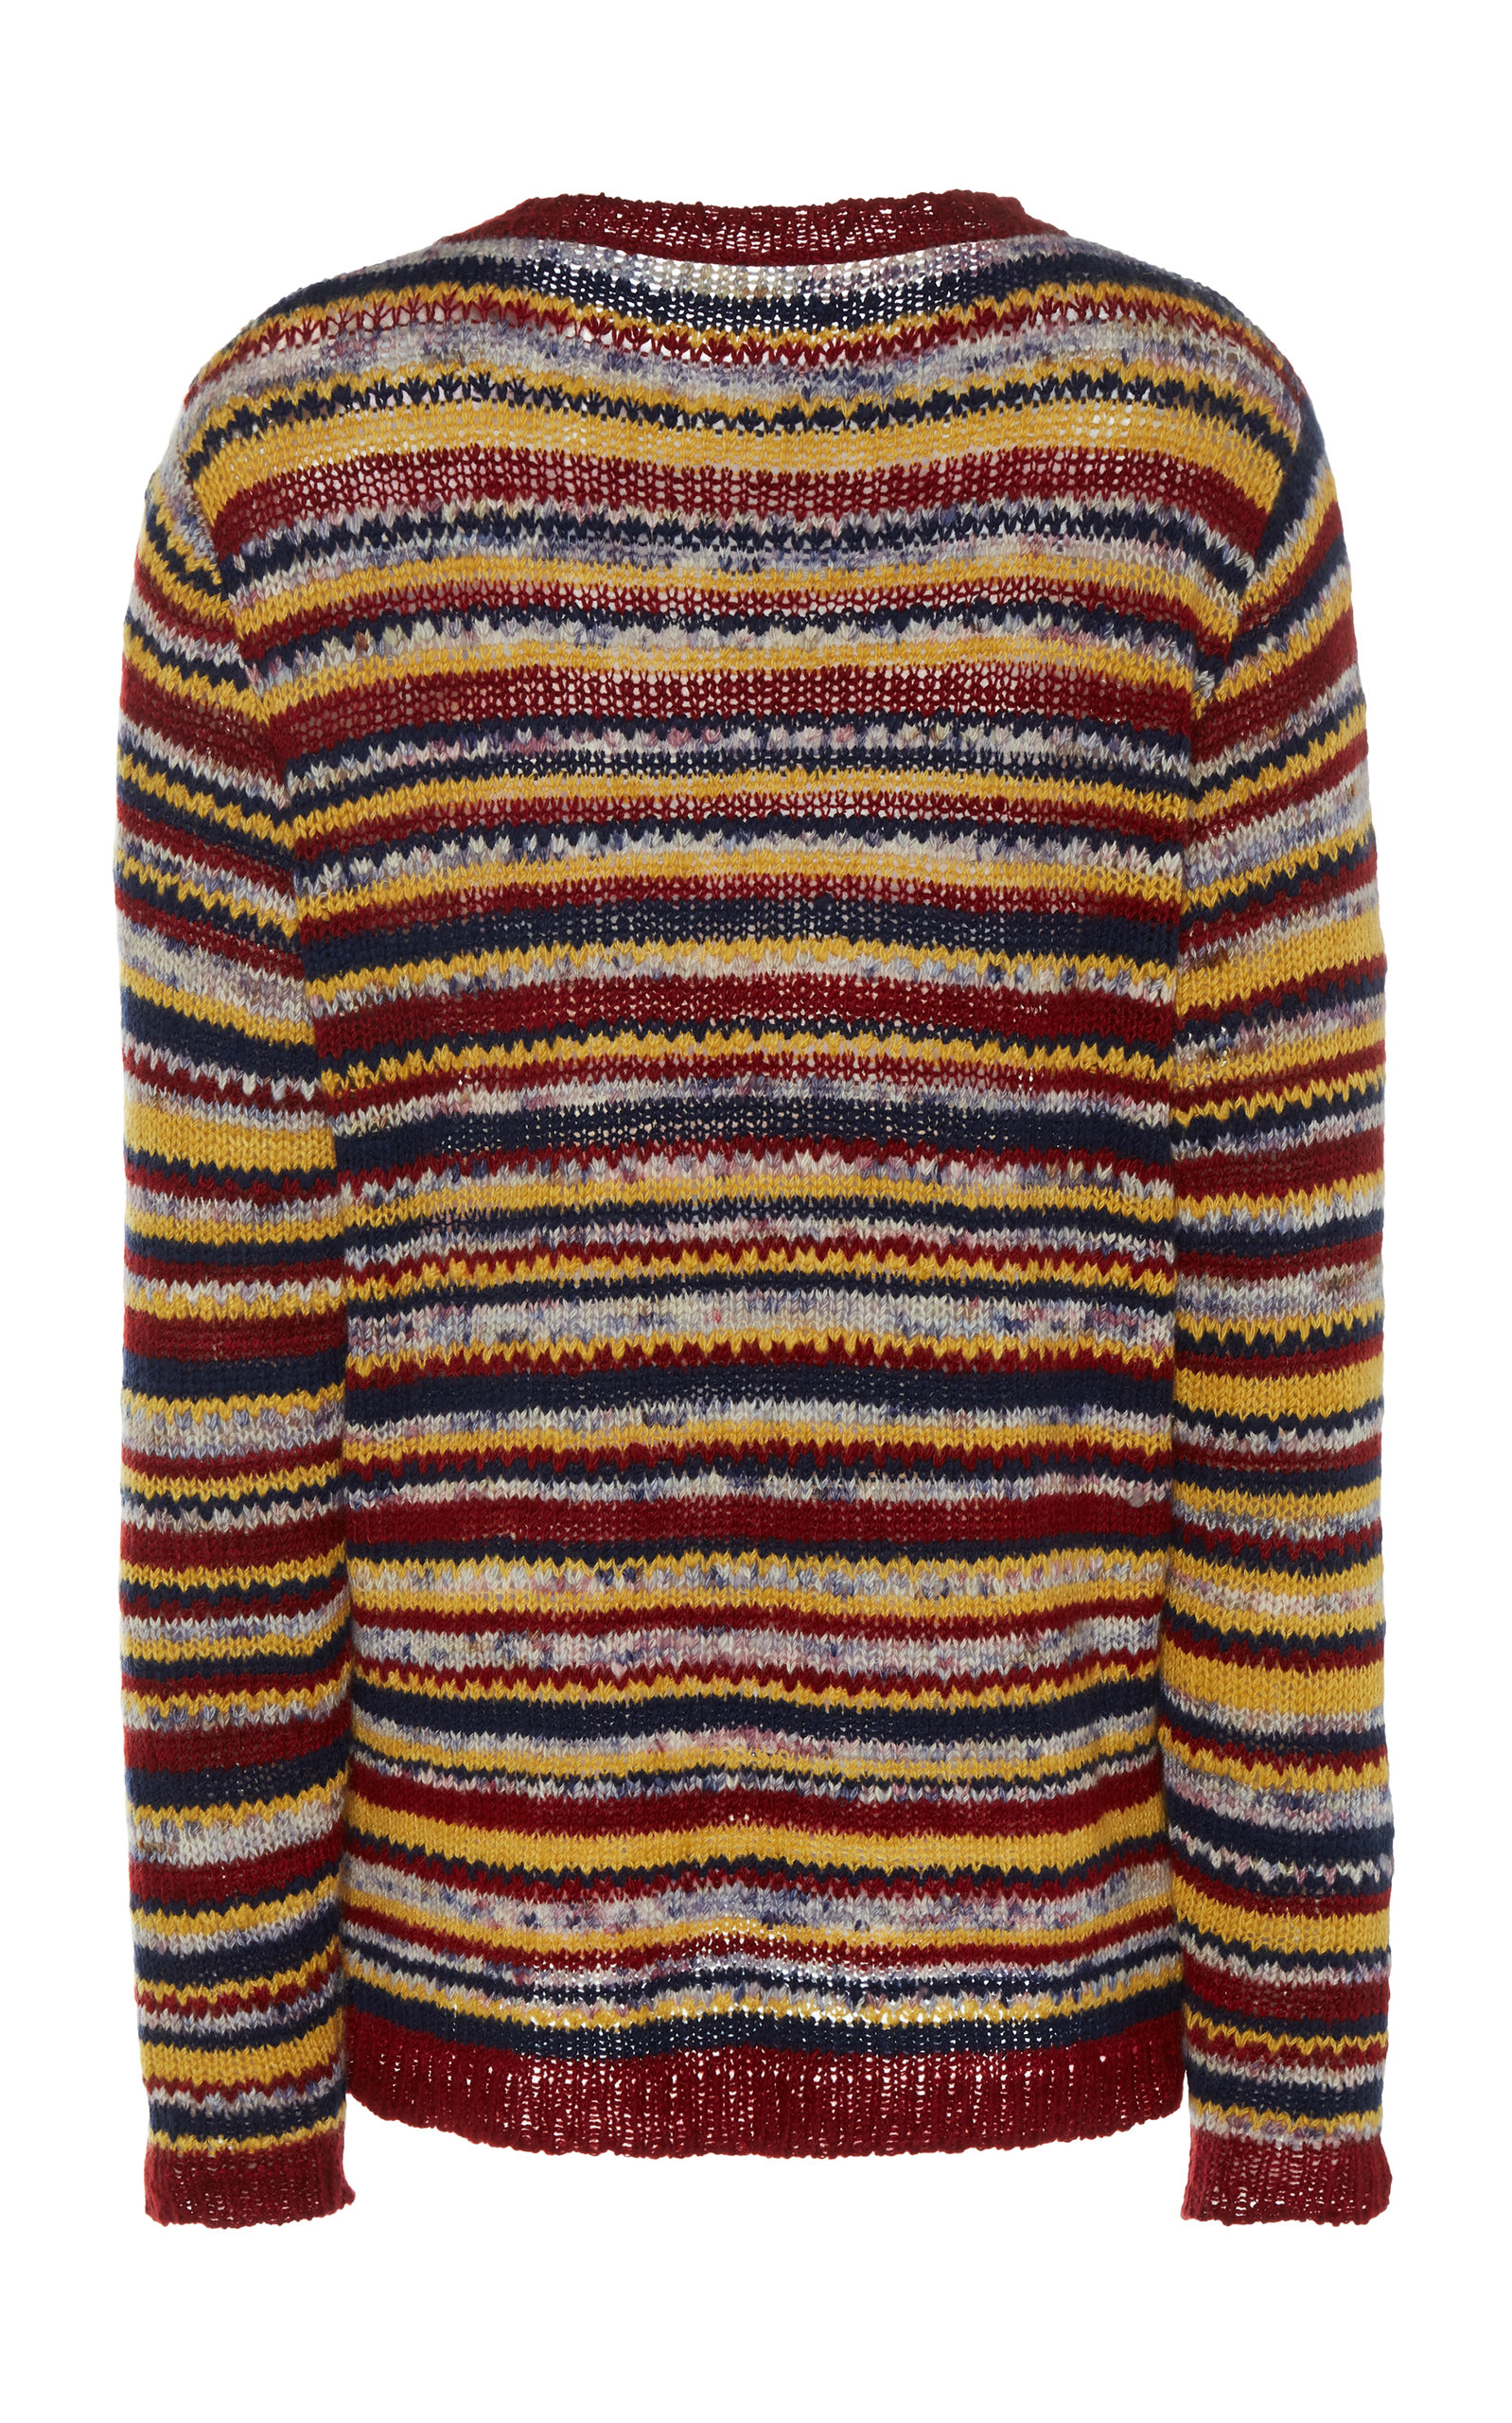 fbf6f2b90 Television Striped Cashmere Sweater by The Elder Statesman